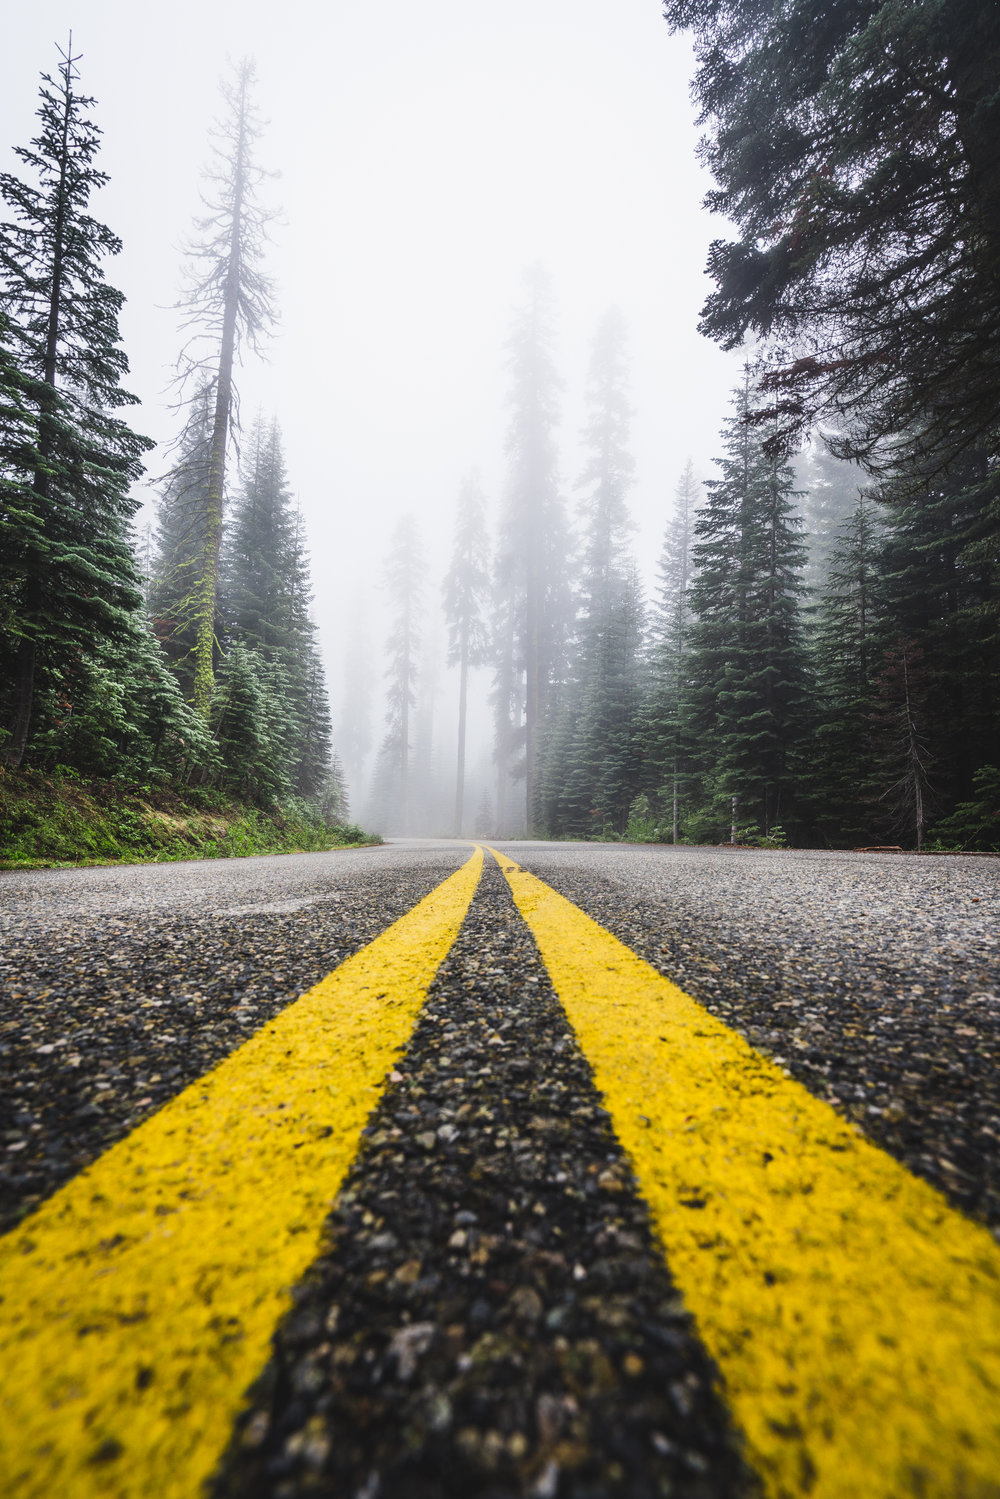 Road, Sierra national forest, blog, hiking, fog, california